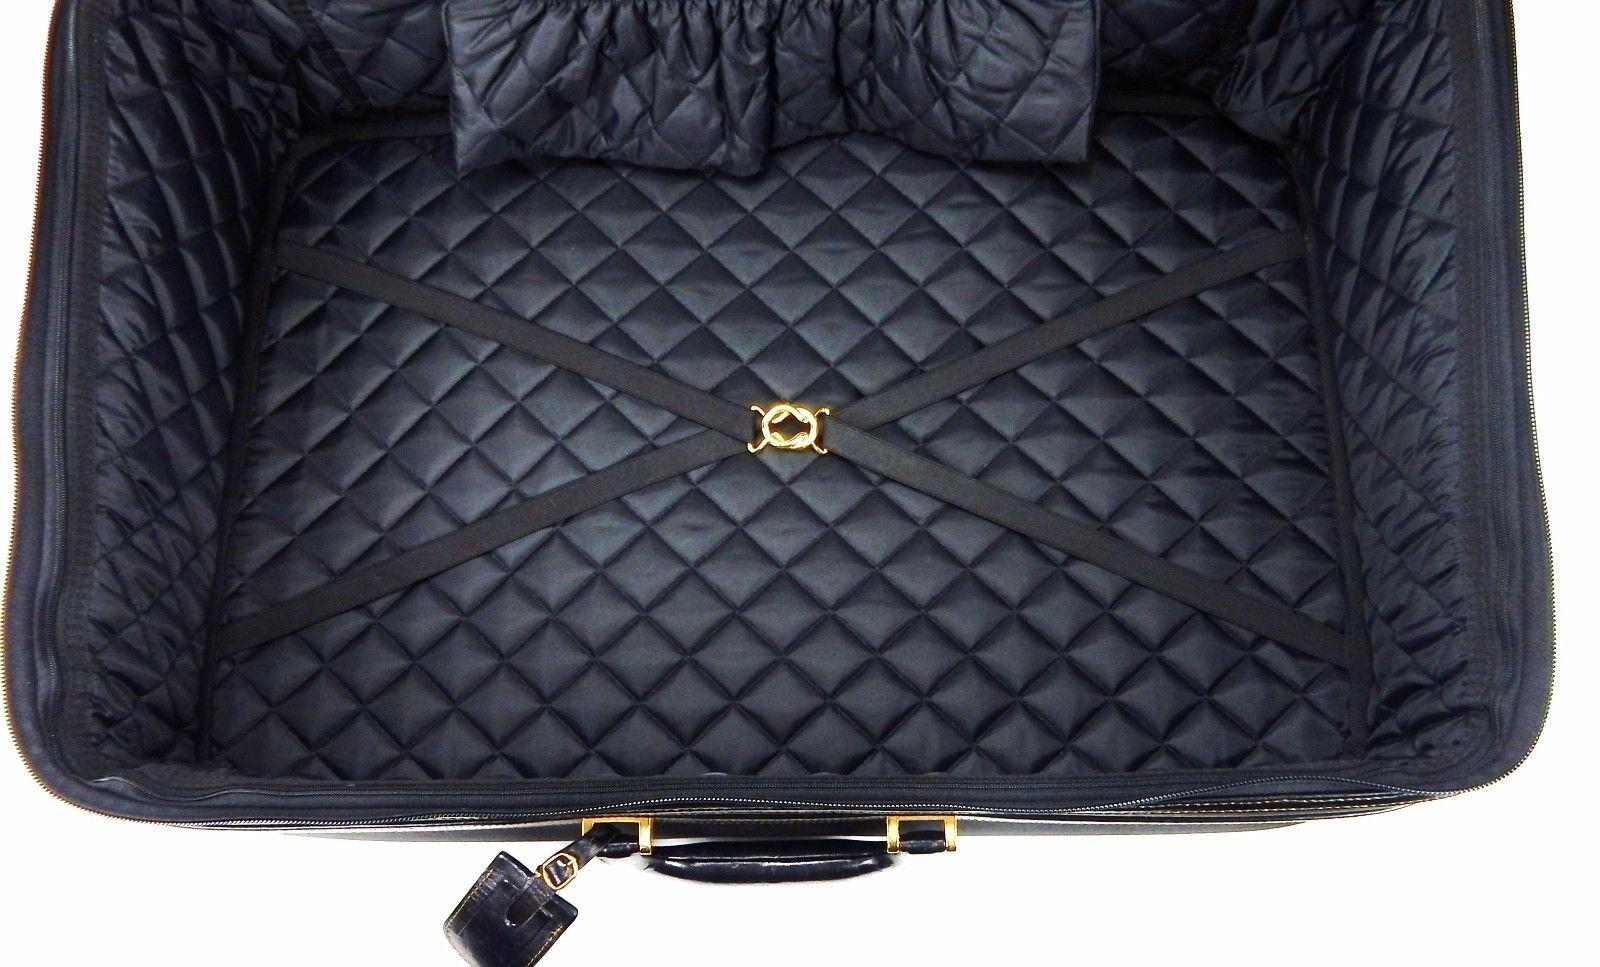 d7c14a739ca3 ... coupon fendi rare full size rolling suitcase luggage w lock id tag  black canvas weekend travel ...